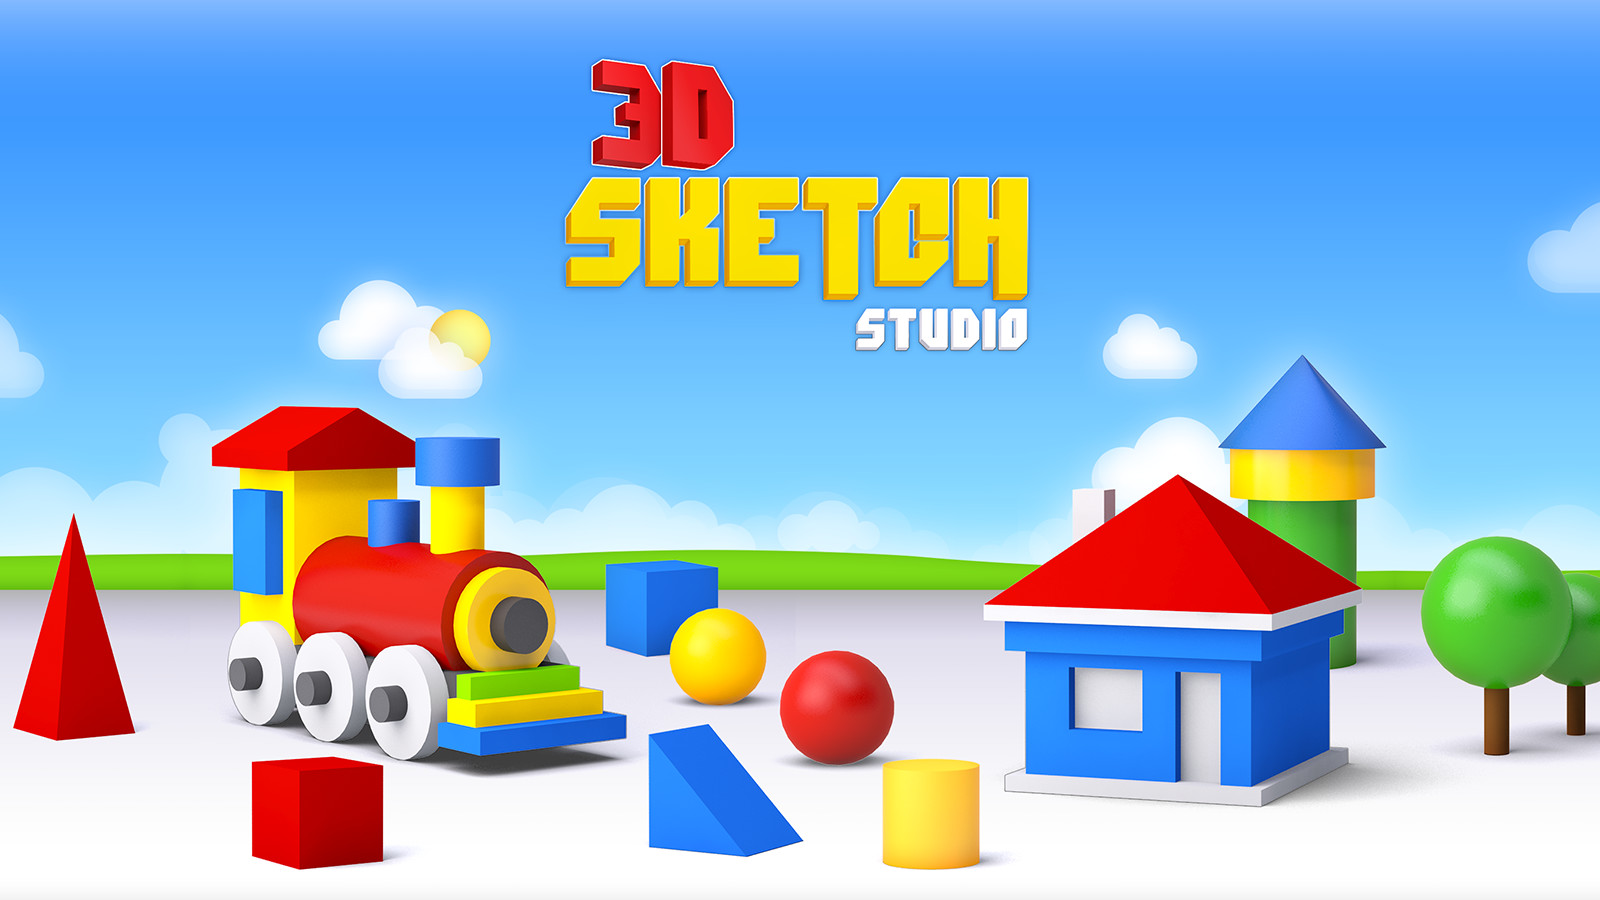 3D Sketch and Stretch Studio